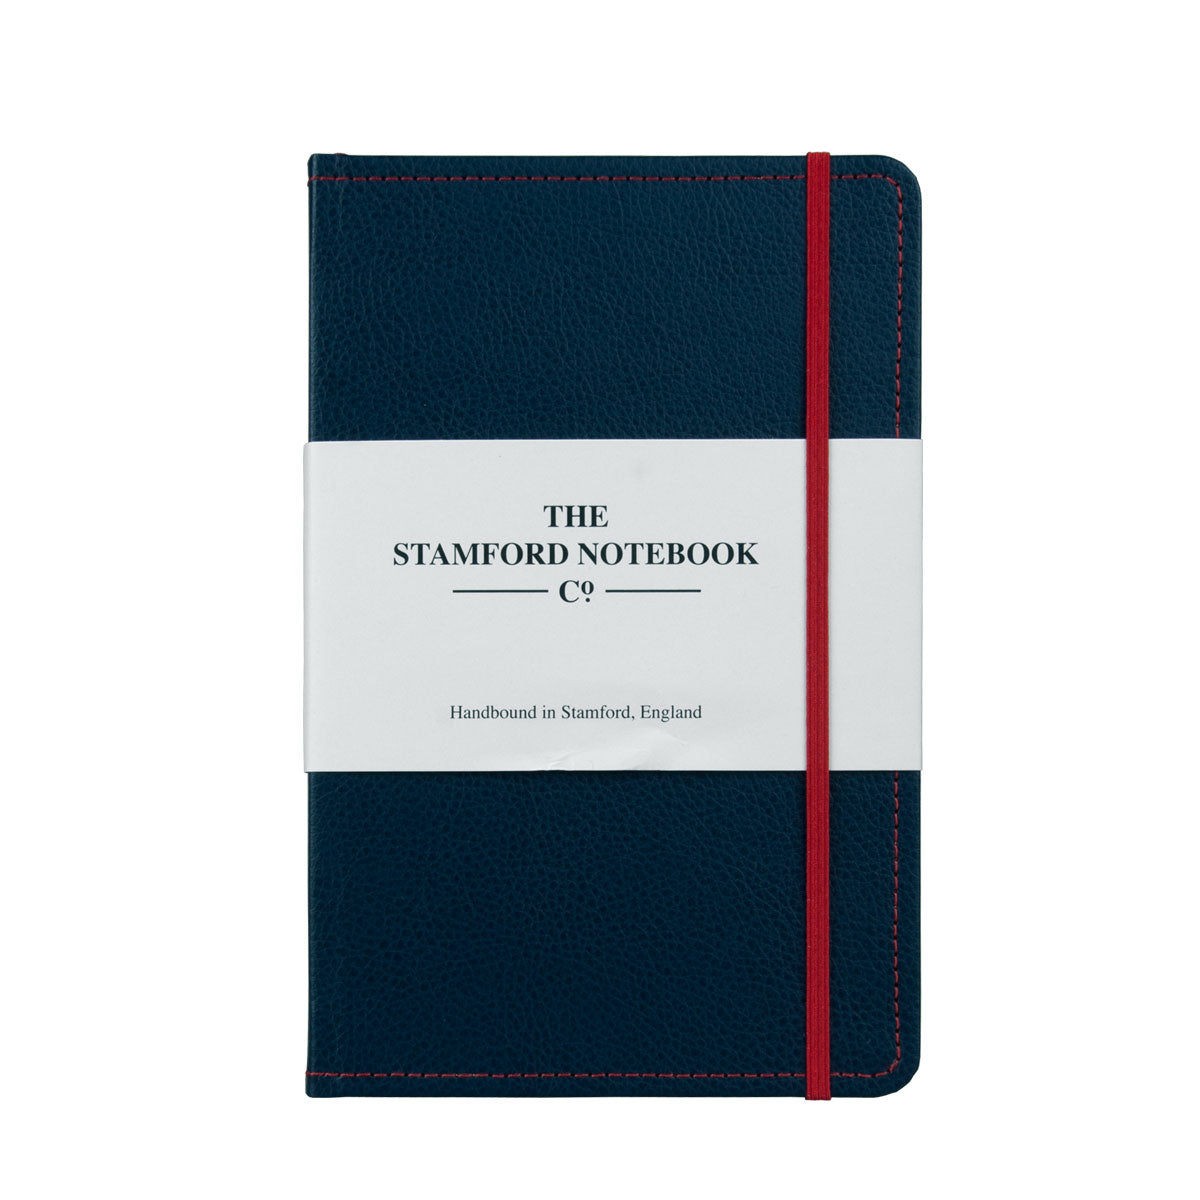 Marine Blue leather notebook with red stitching